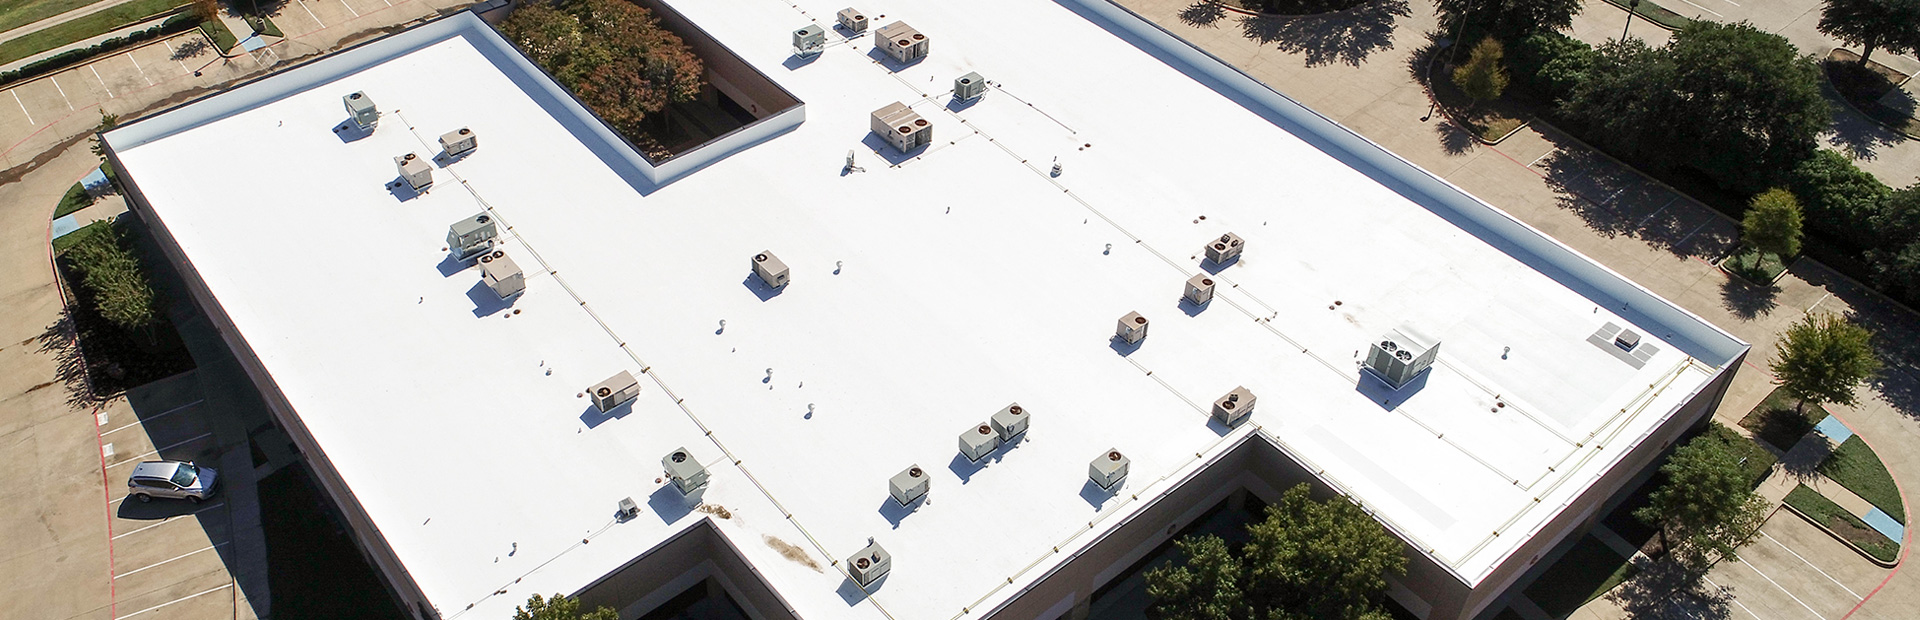 RCS Roofing & Sheet Metal - BBB Accredited Roofing Company